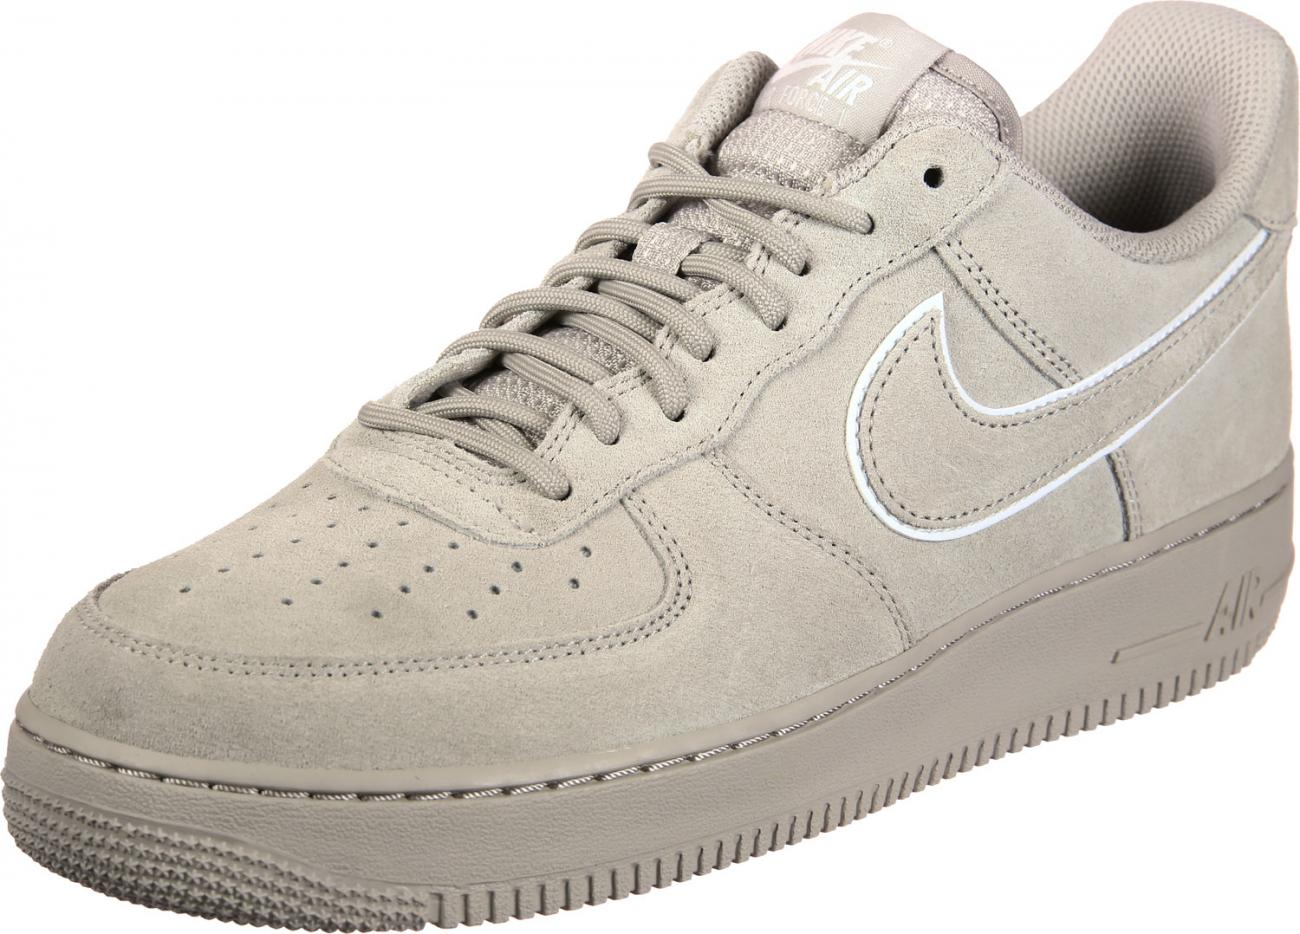 Soldes > nike air force 1 blanche homme > en stock